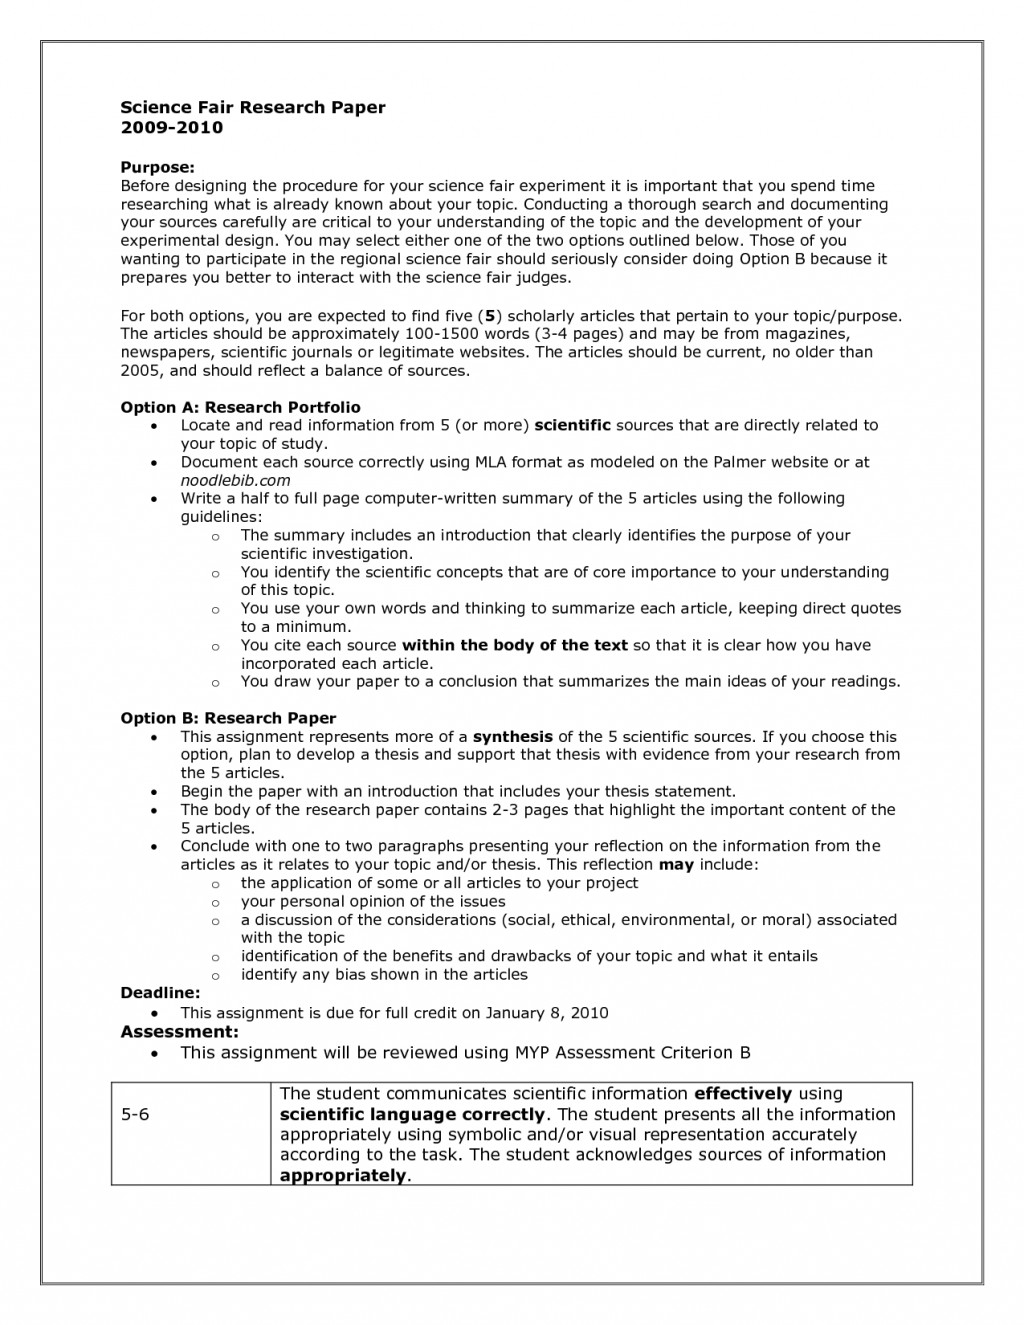 002 Research Paper Best Photos Of Science Procedure Template Fair Essay Example Lmat Awesome Format For Sample Political Mla Scientific Large